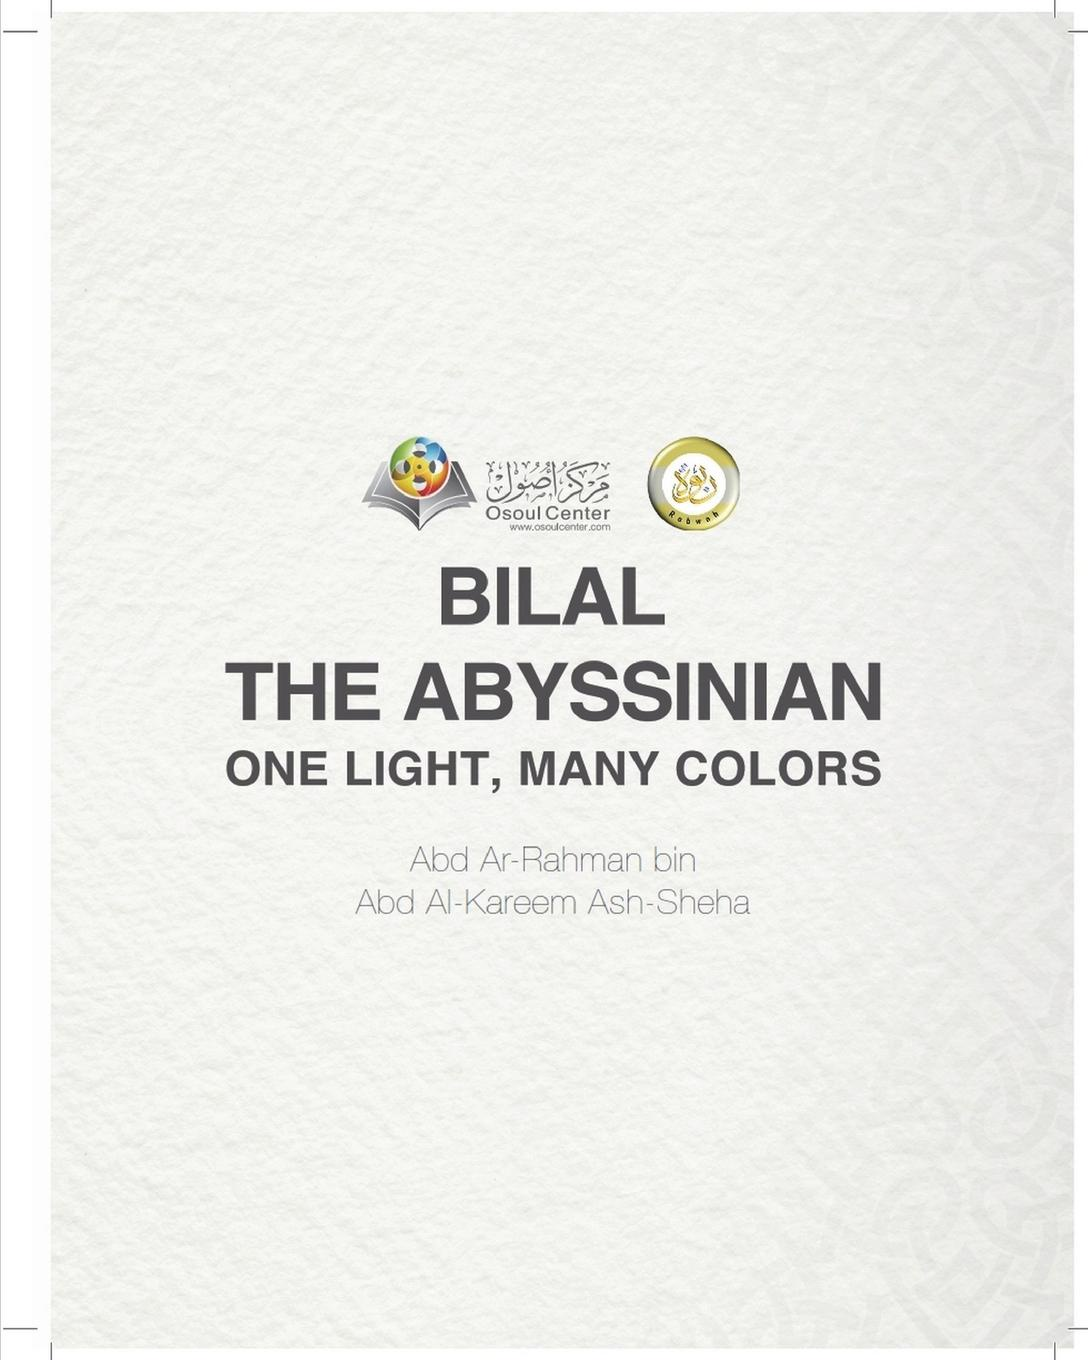 Osoul Center Bilal the Abyssinian One Light, Many Colors шапка bilal a0101